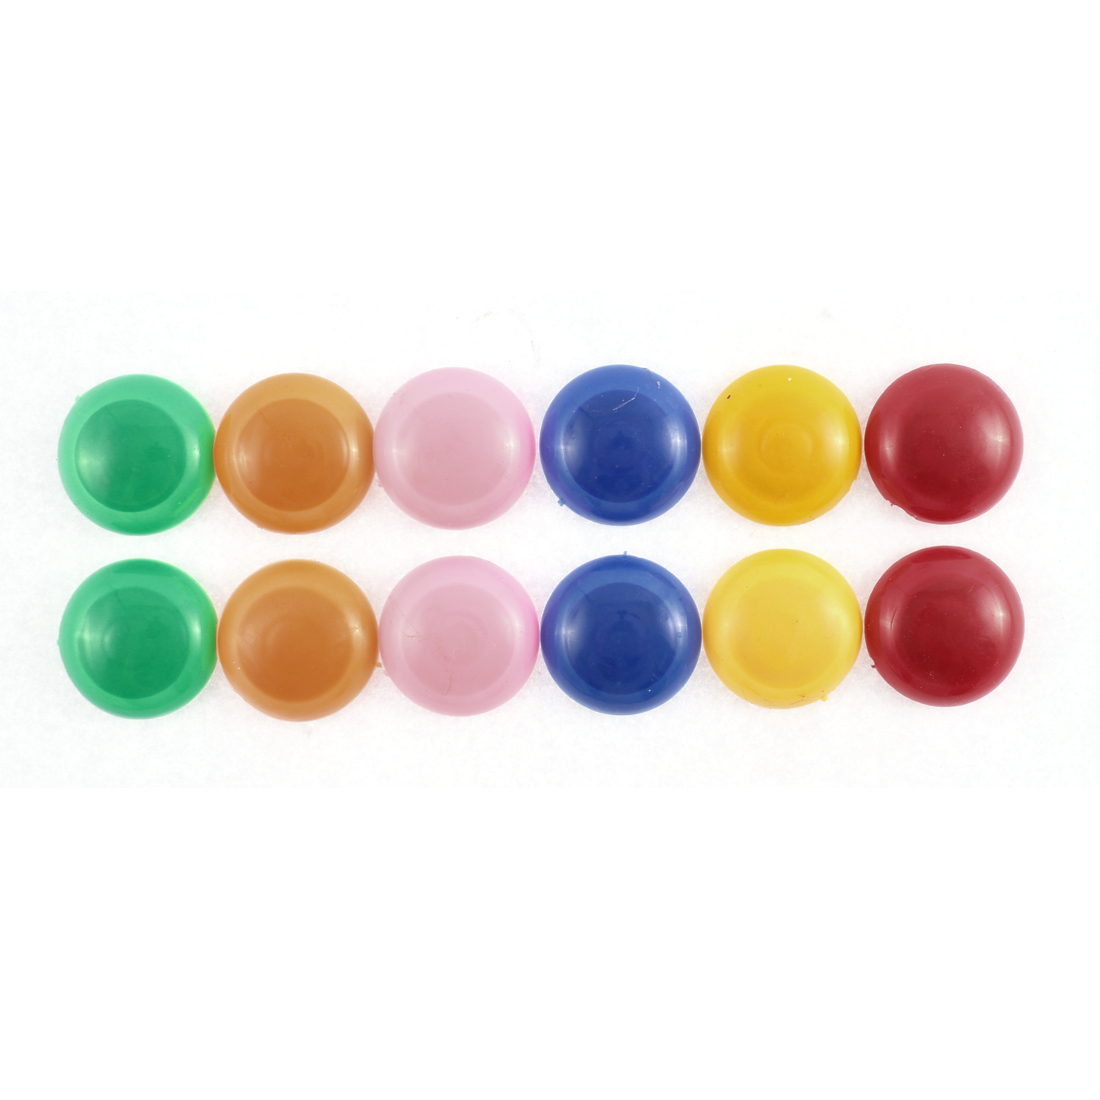 School Office Home Whiteboard Magnet Pins Buttons Assorted Color 30mm 12 Pcs